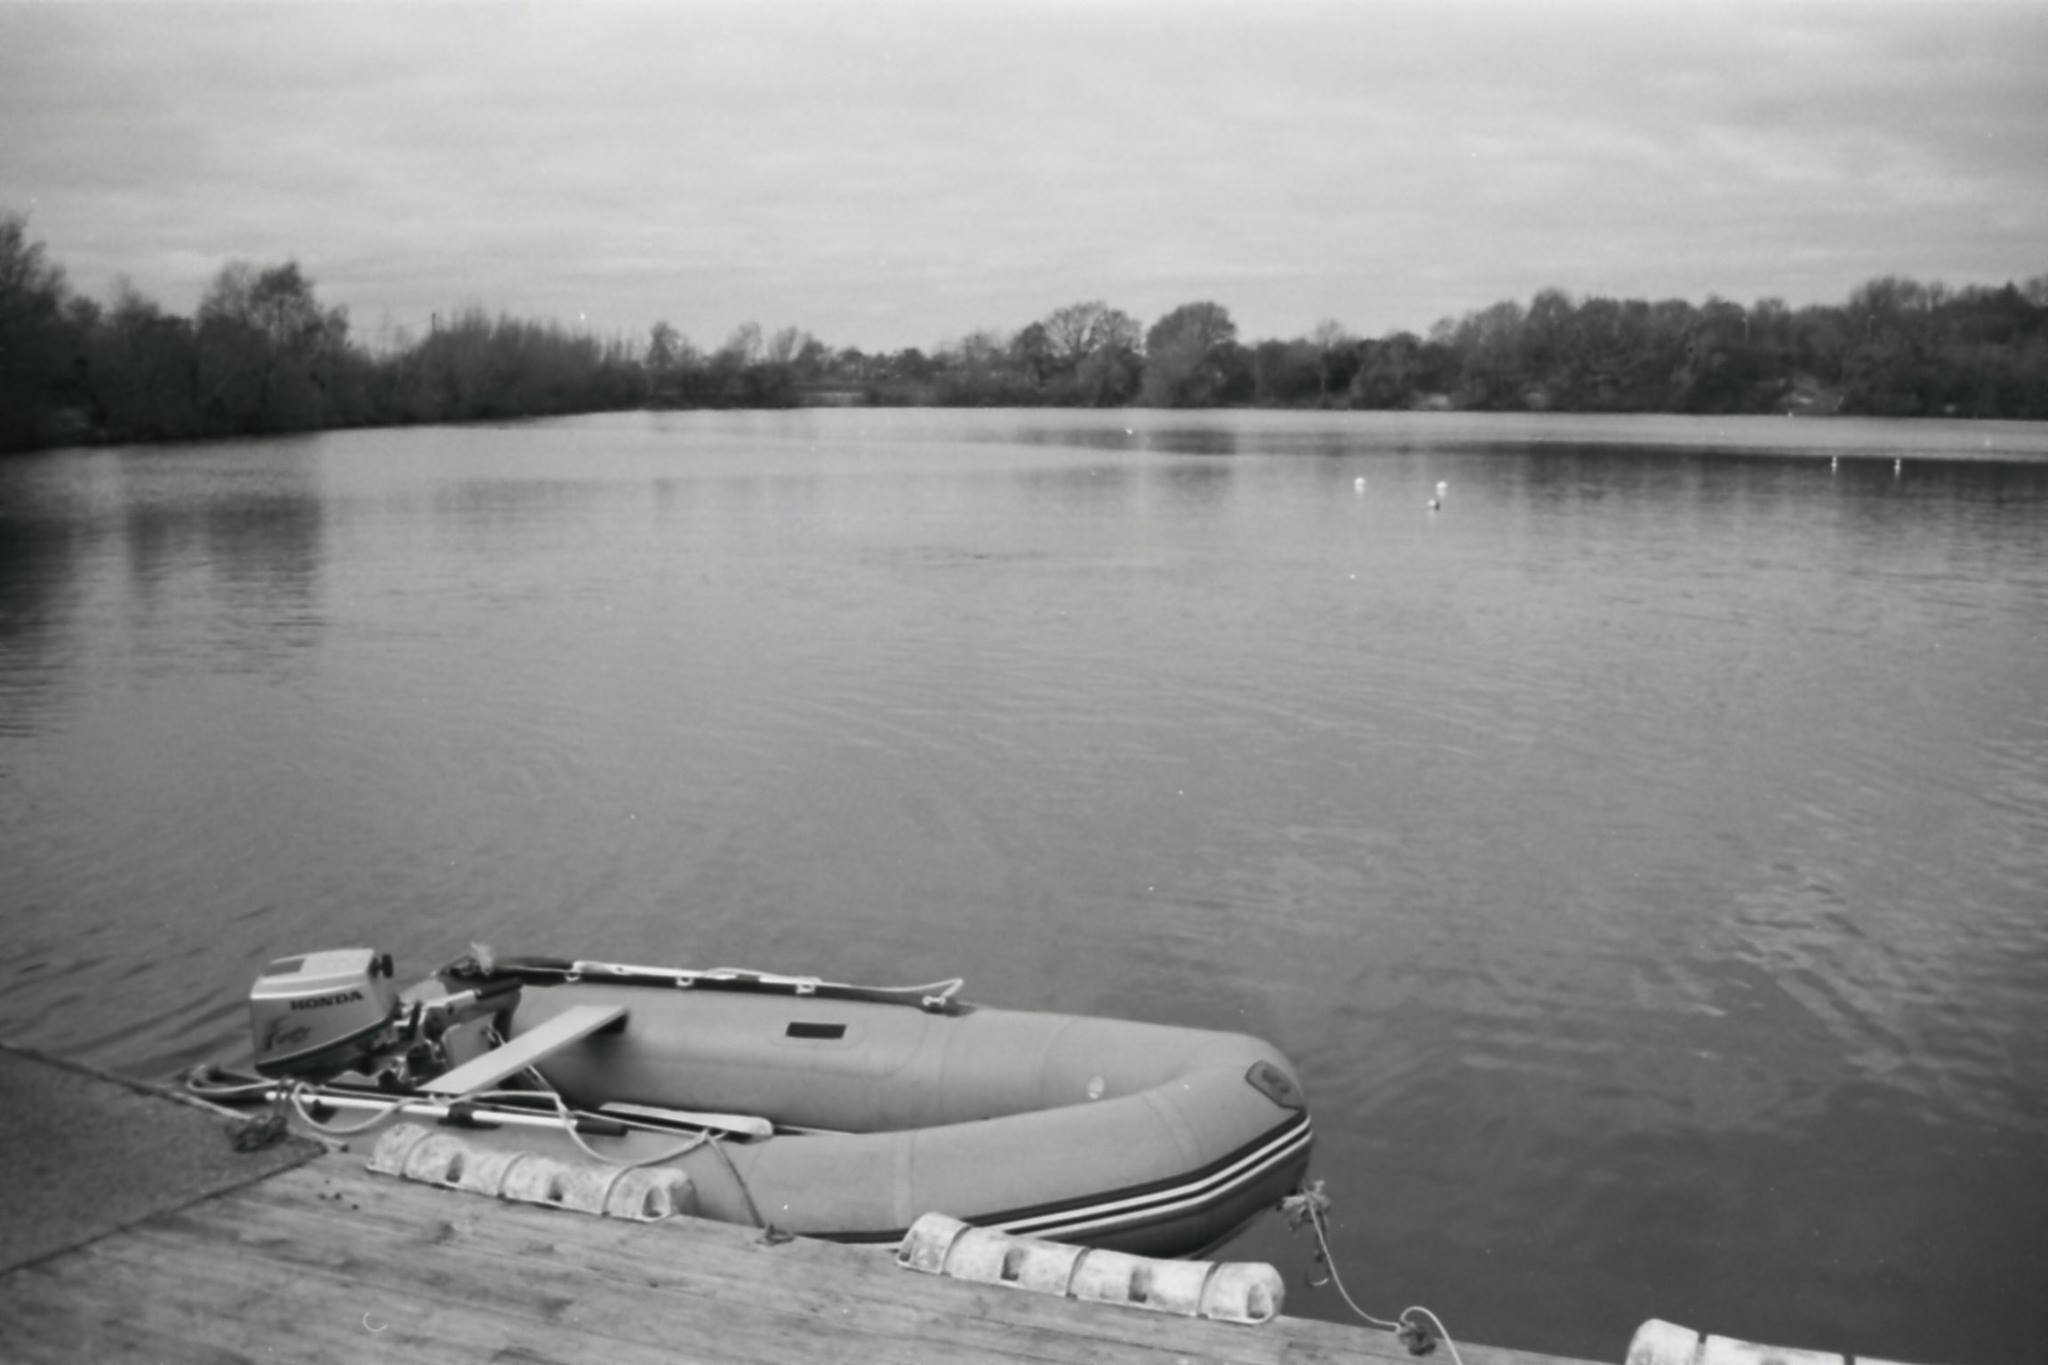 Boat at the Reservoir